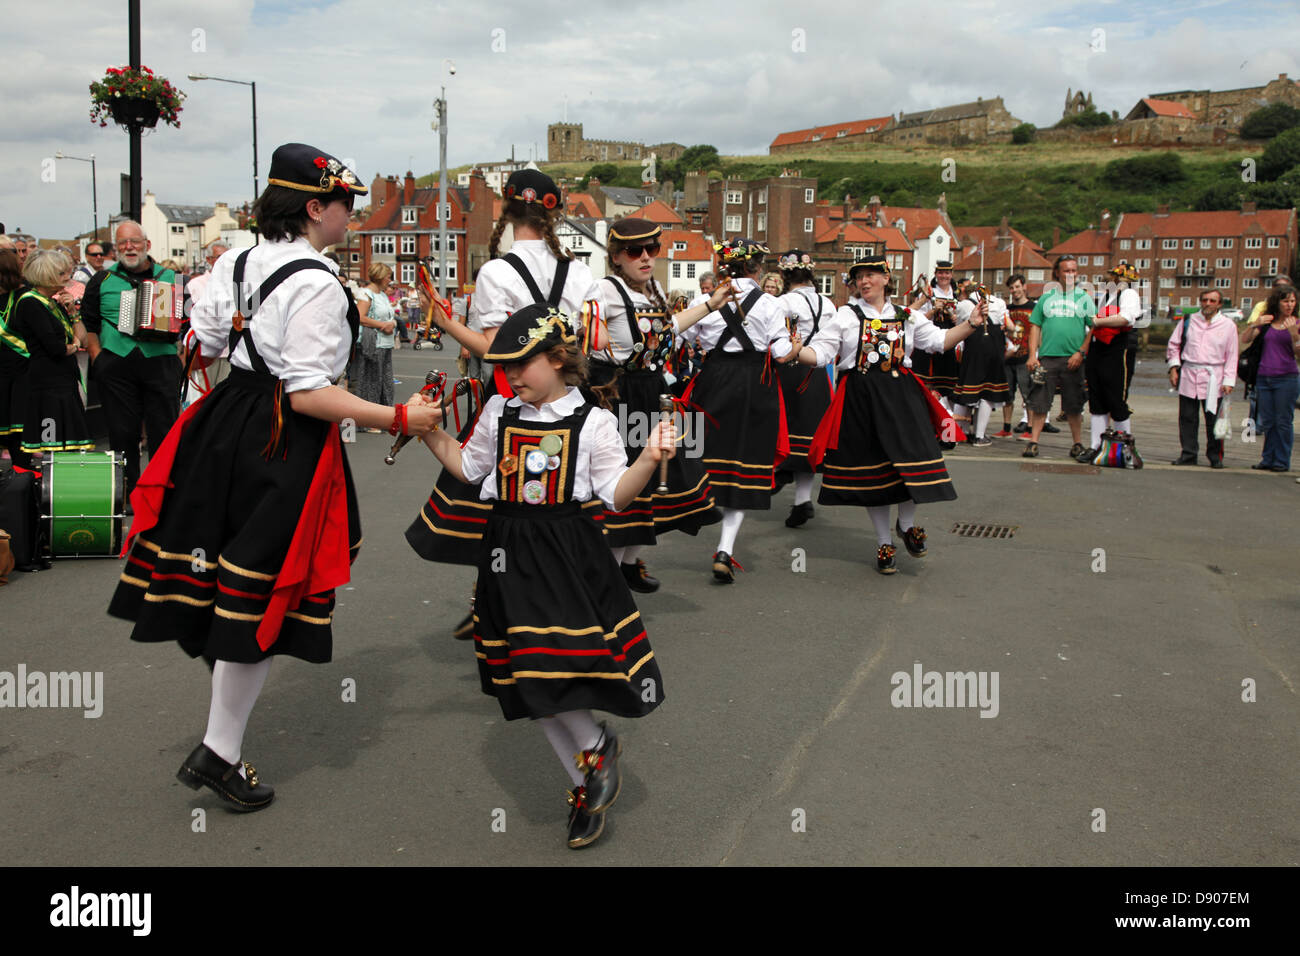 BRIGGATE MORRIS DANCERS WHITBY NORTH YORKSHIRE ENGLAND 18 August 2012 - Stock Image